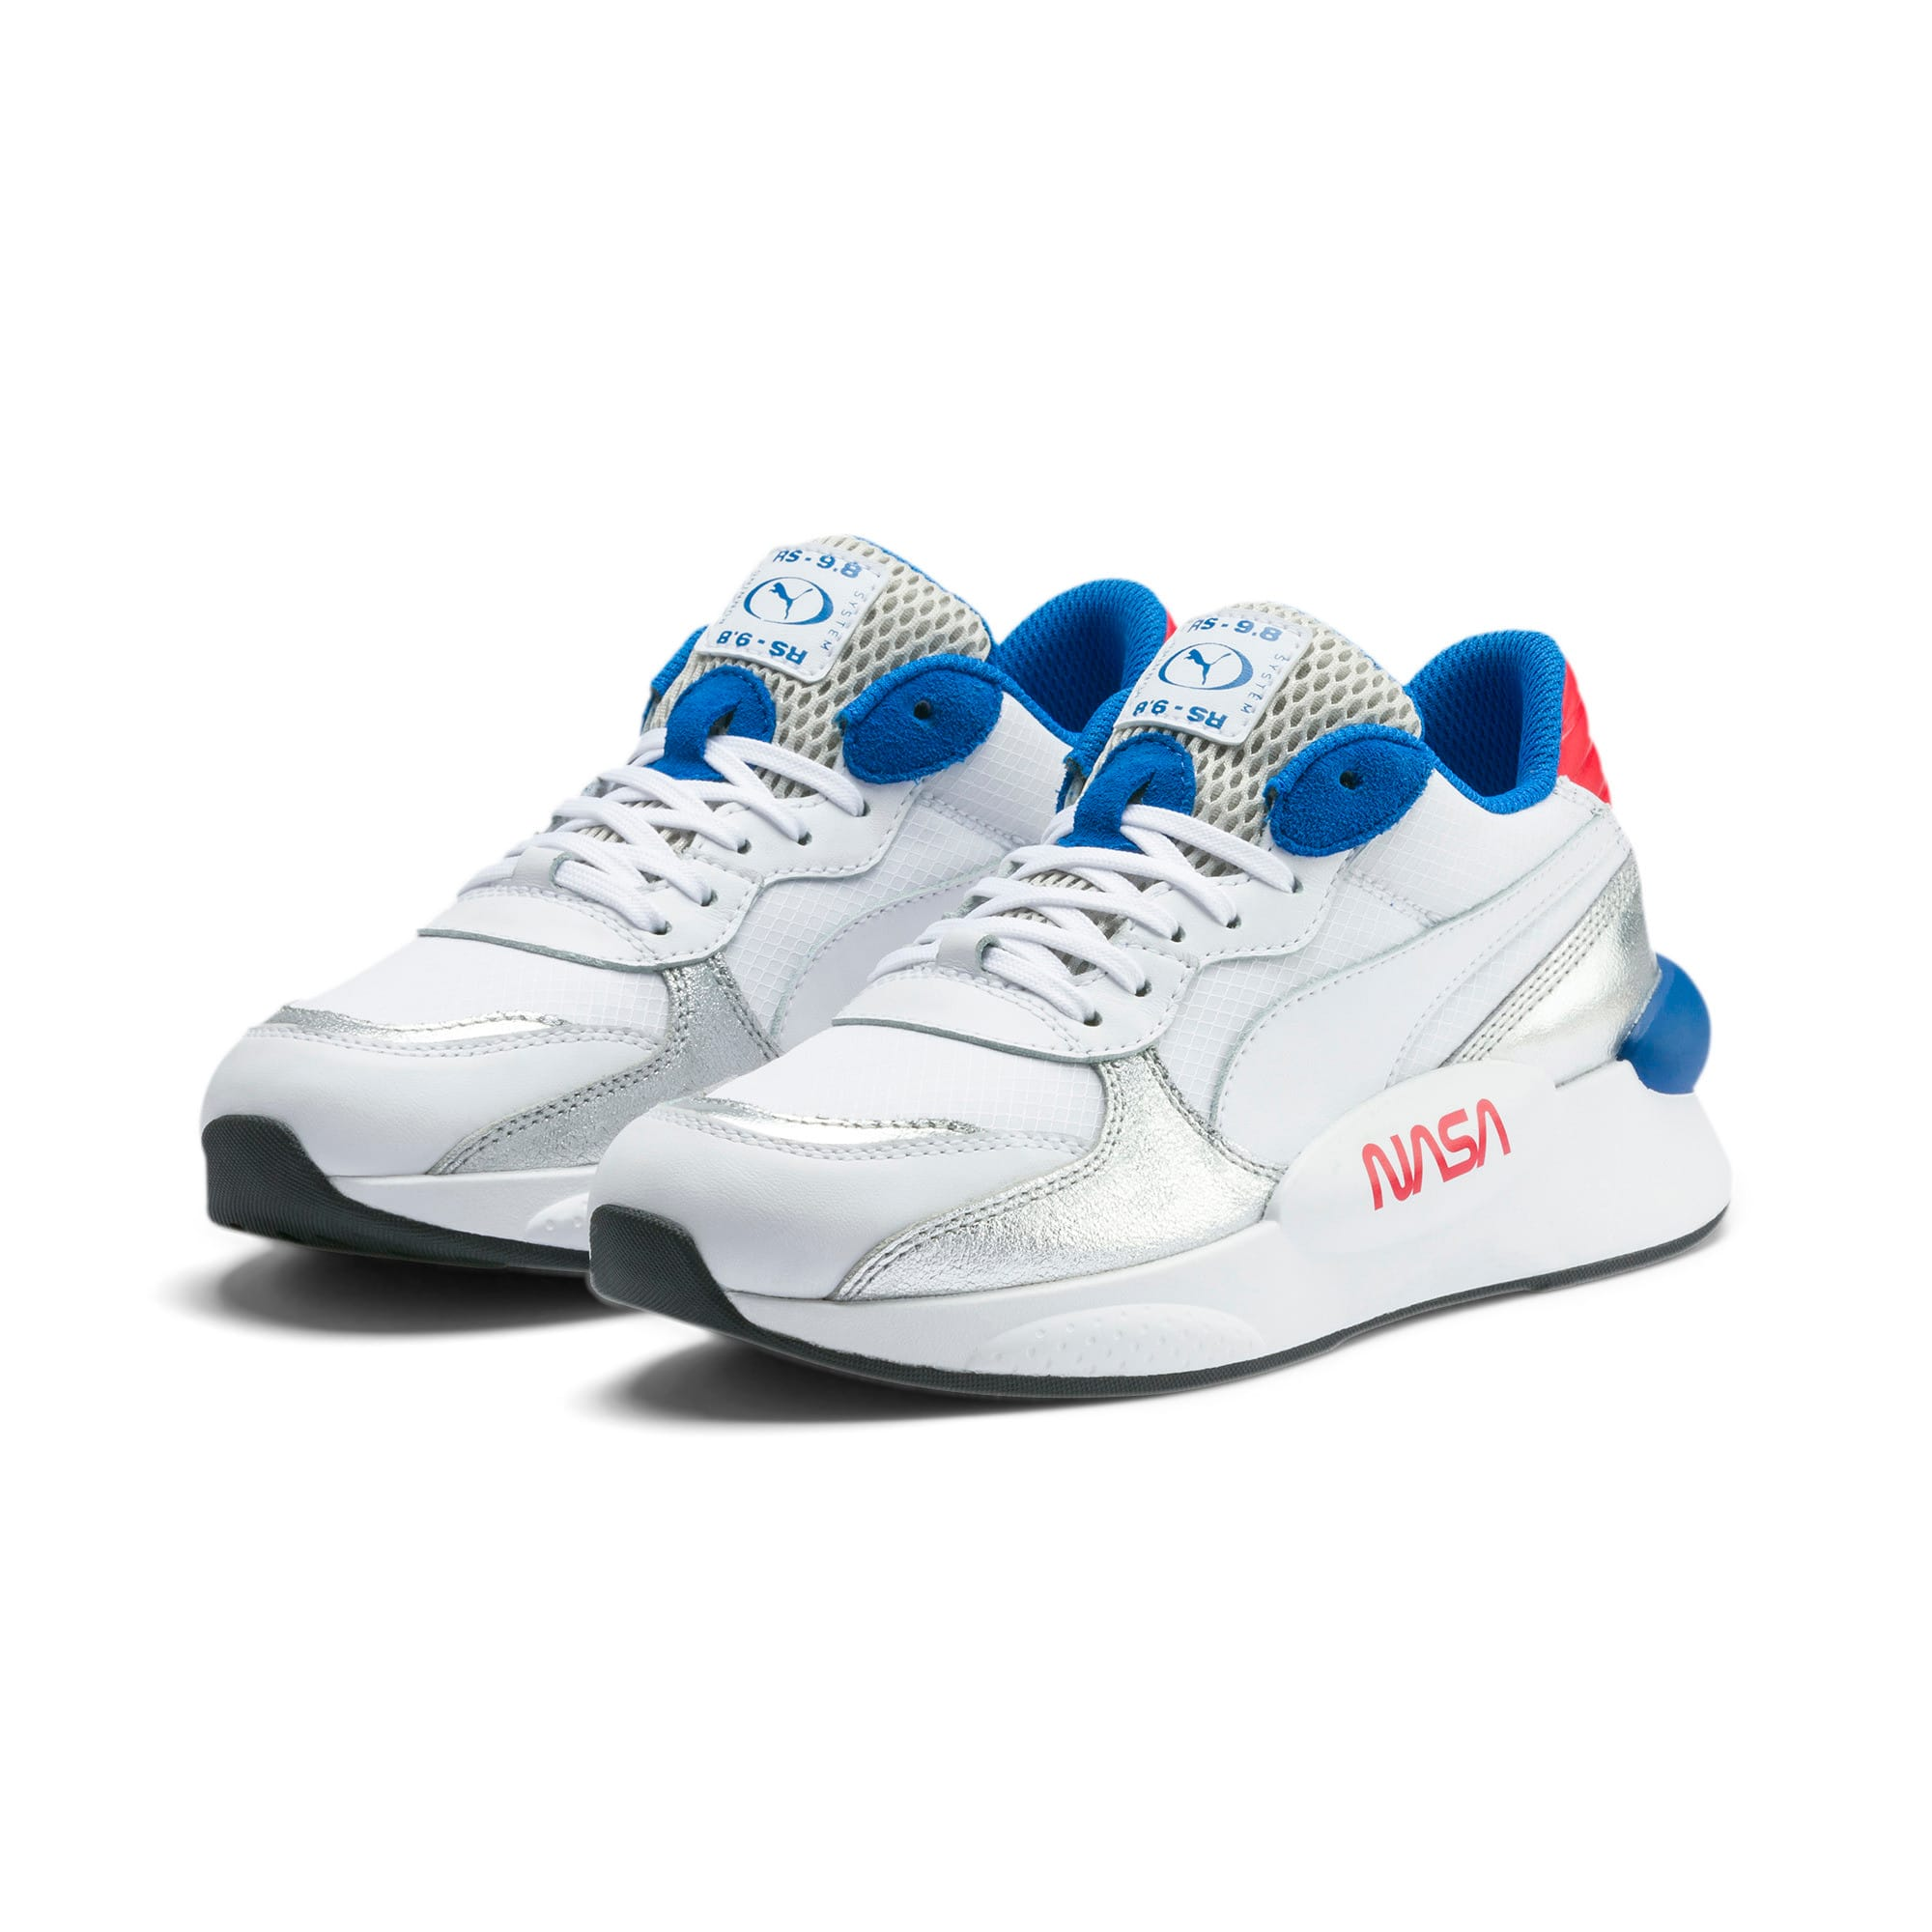 Thumbnail 2 of RS 9.8 Space Explorer Youth Trainers, Puma White-Puma Silver, medium